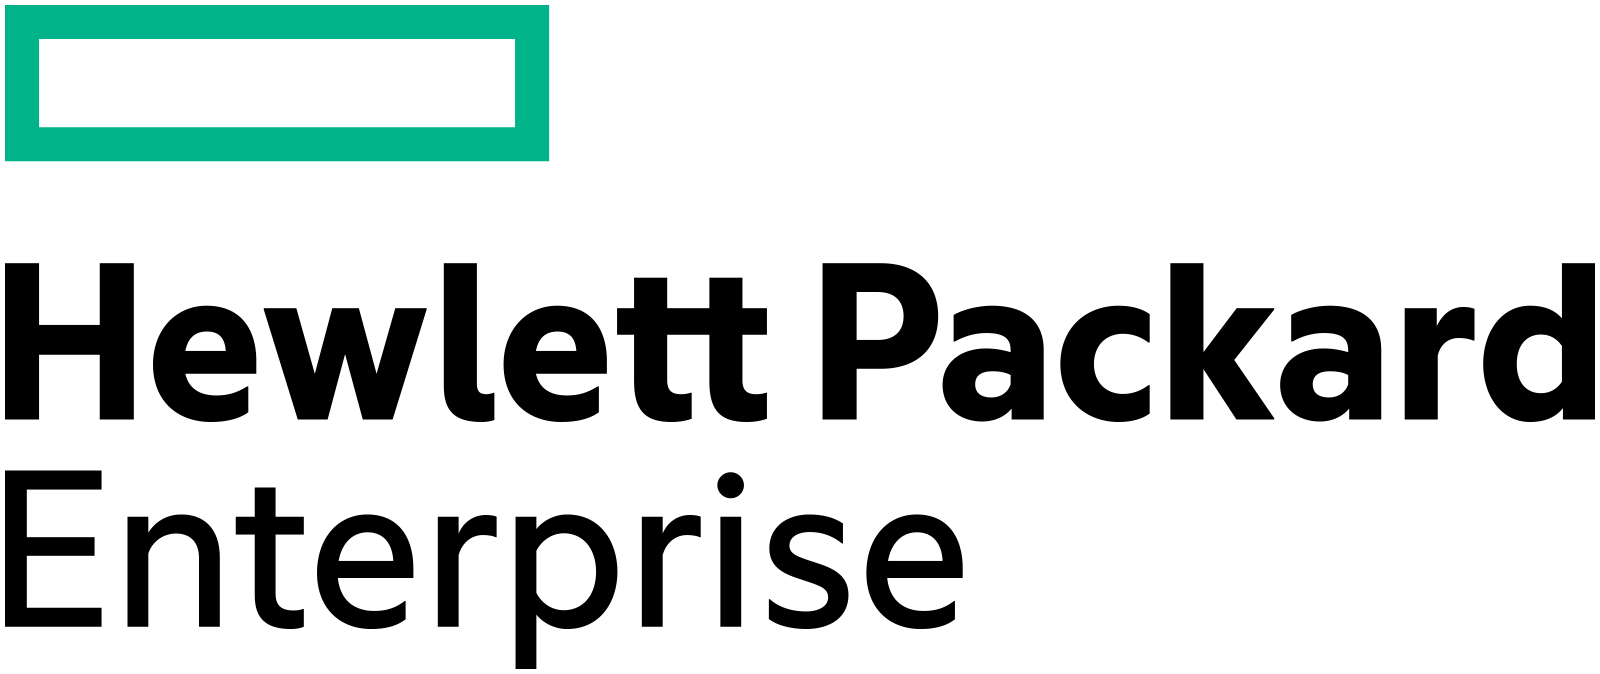 HPE Marketing Pro Program Aims To Support Partner Sales Of 'As-A-Service' Offerings